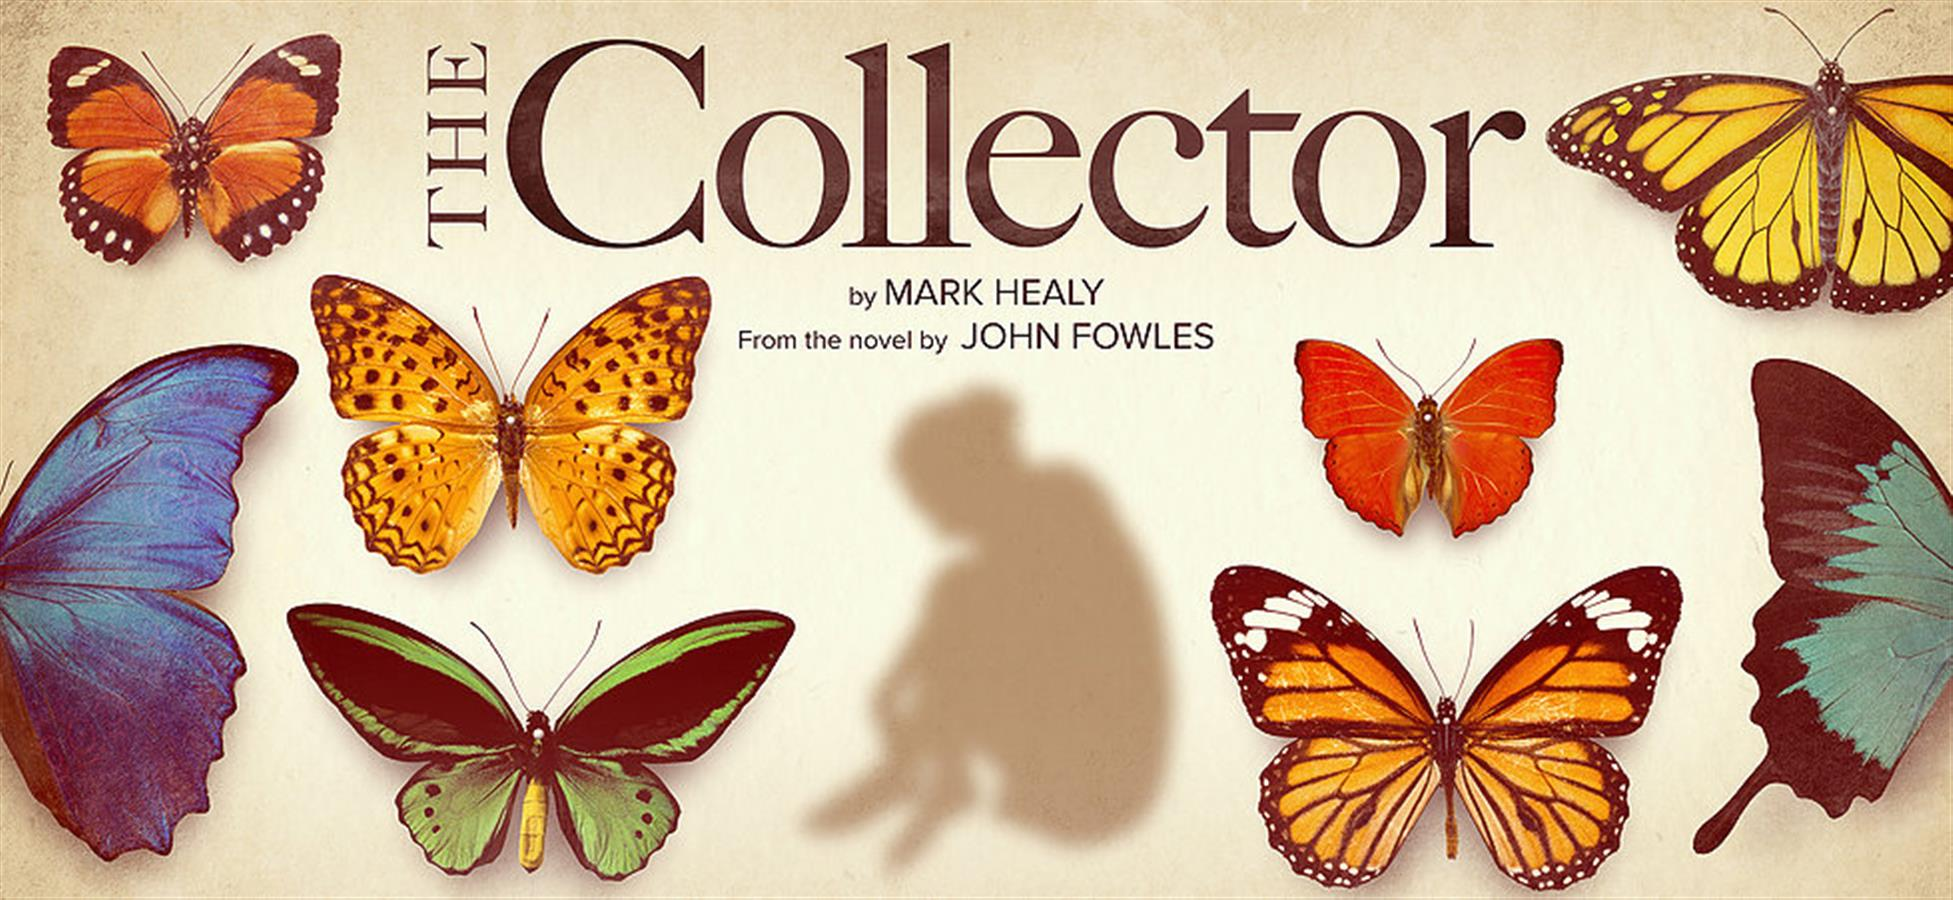 The Collector gallery image